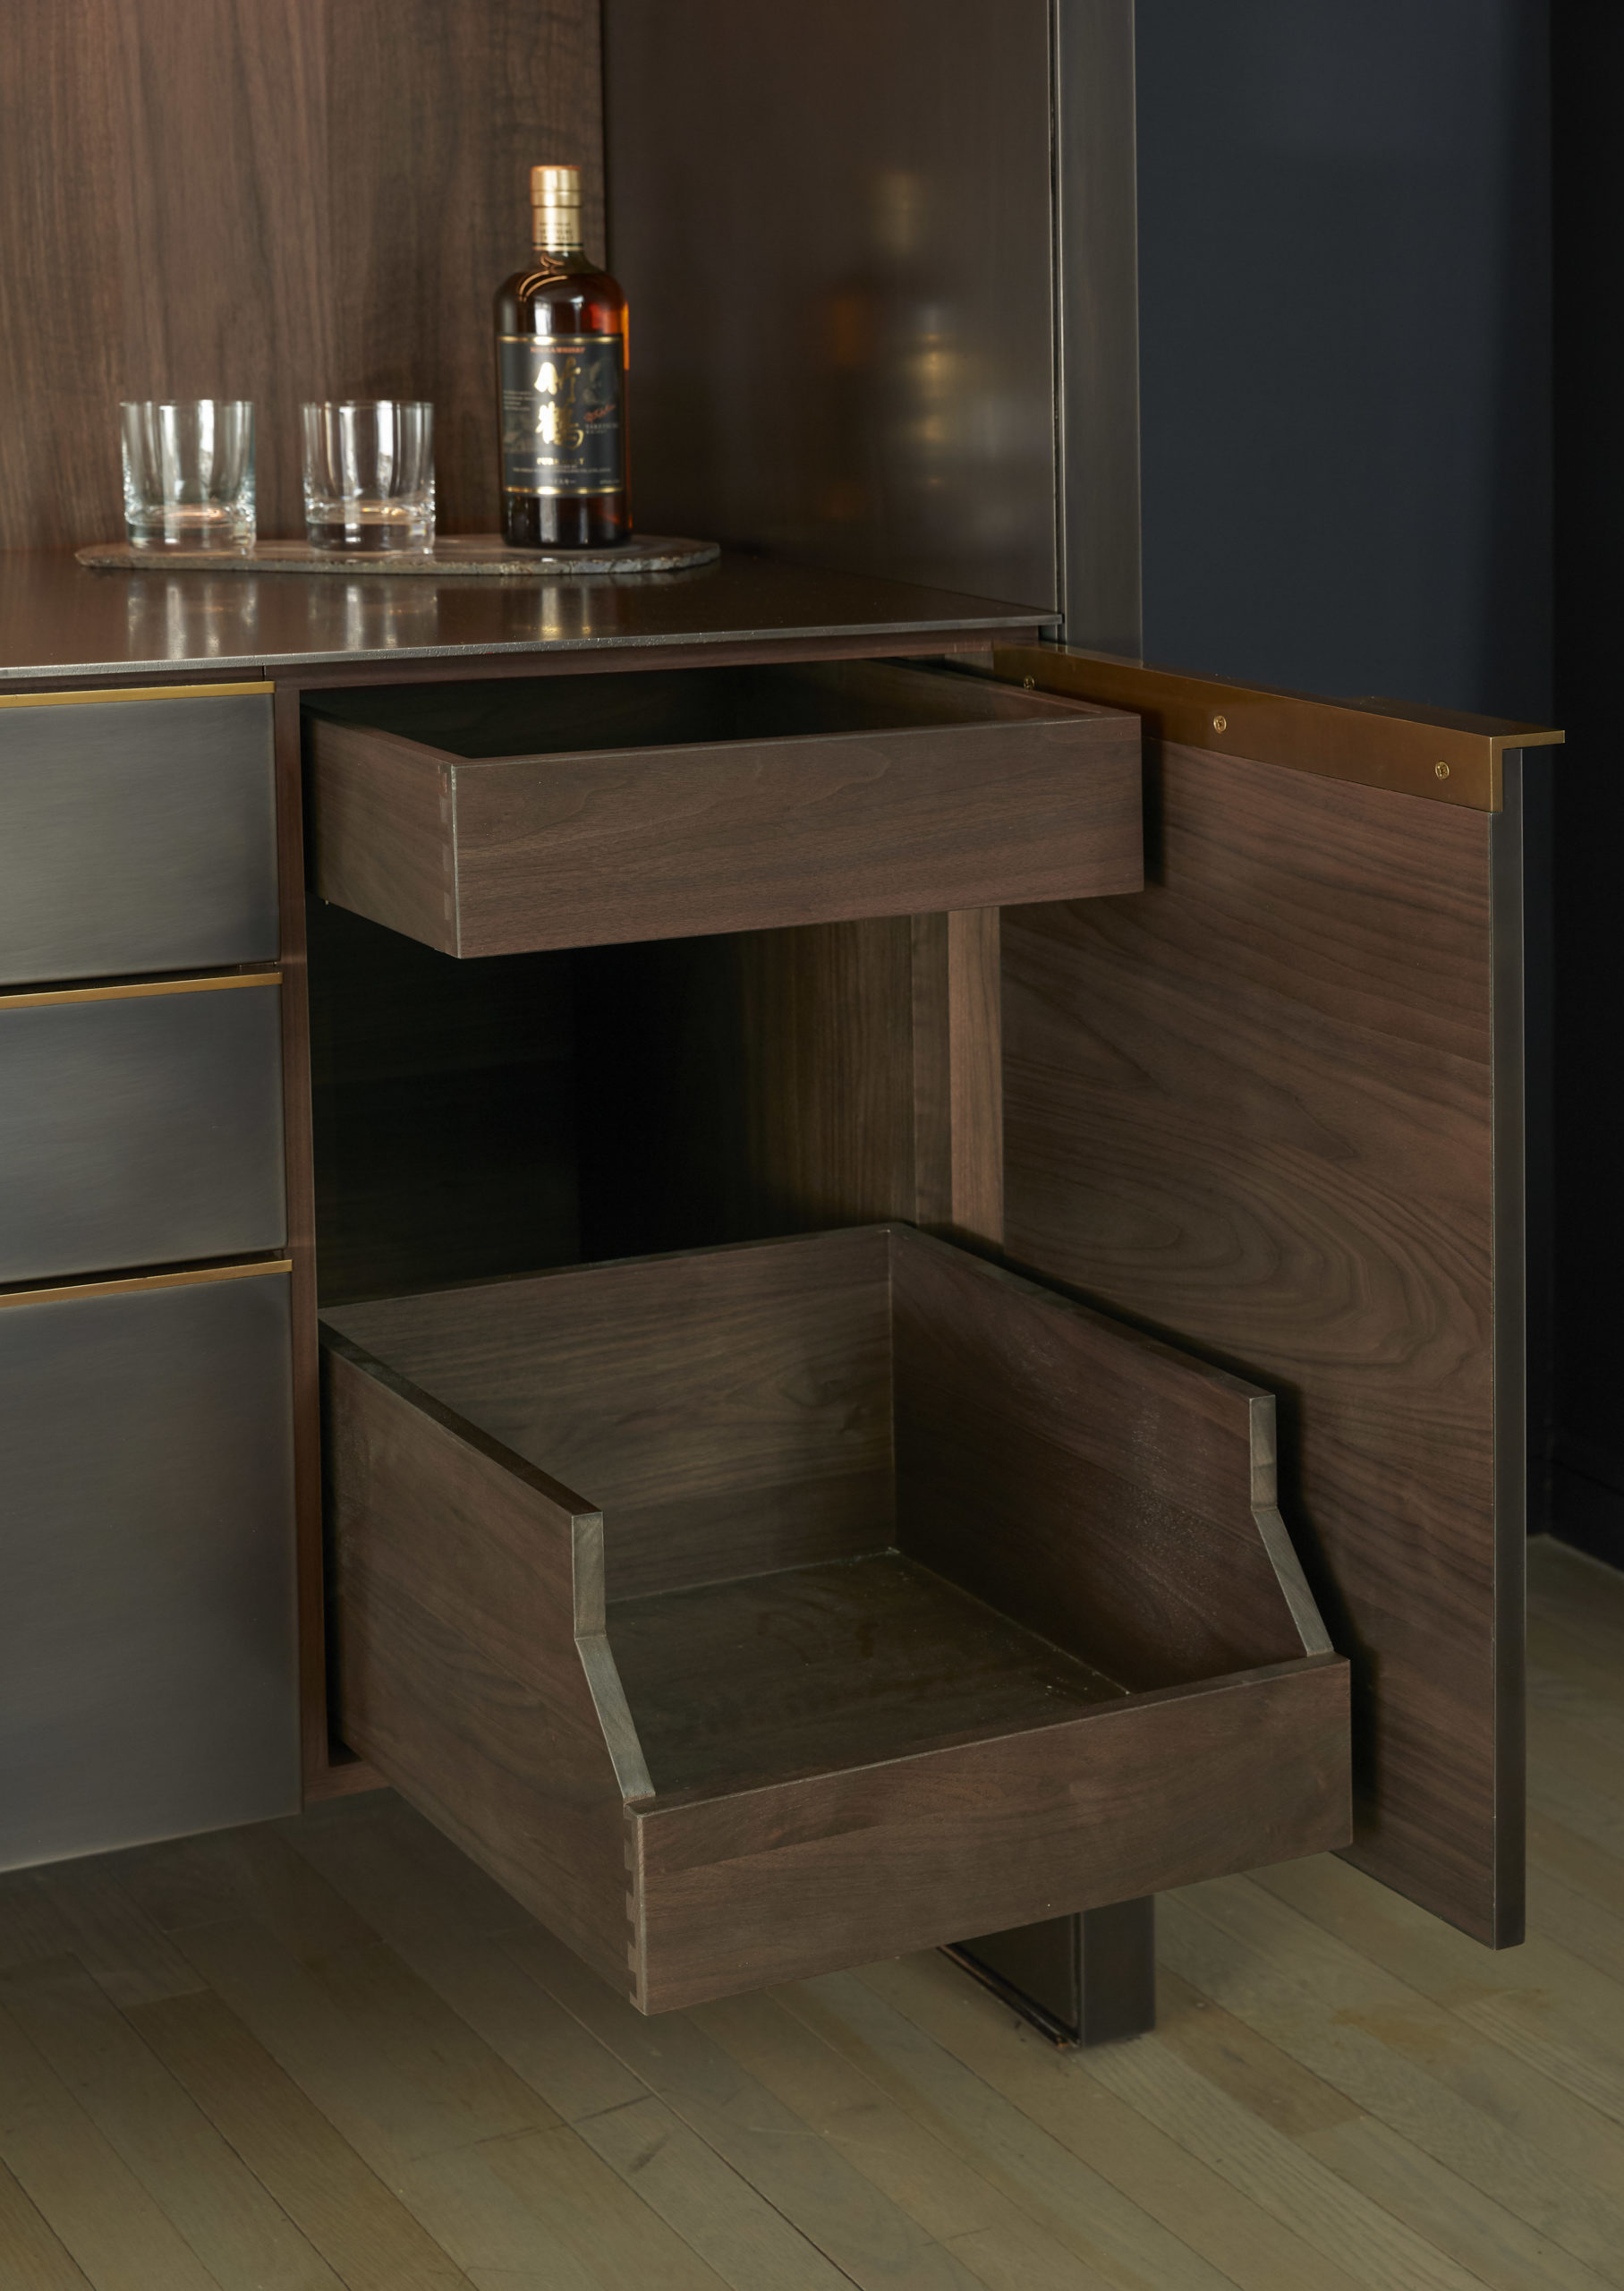 amuneal_products_WNWN_NYDC_4Blackened-Stainless-Bar-Detail-Whole-Cabinet-Pullout_nycshowroom-scaled-1